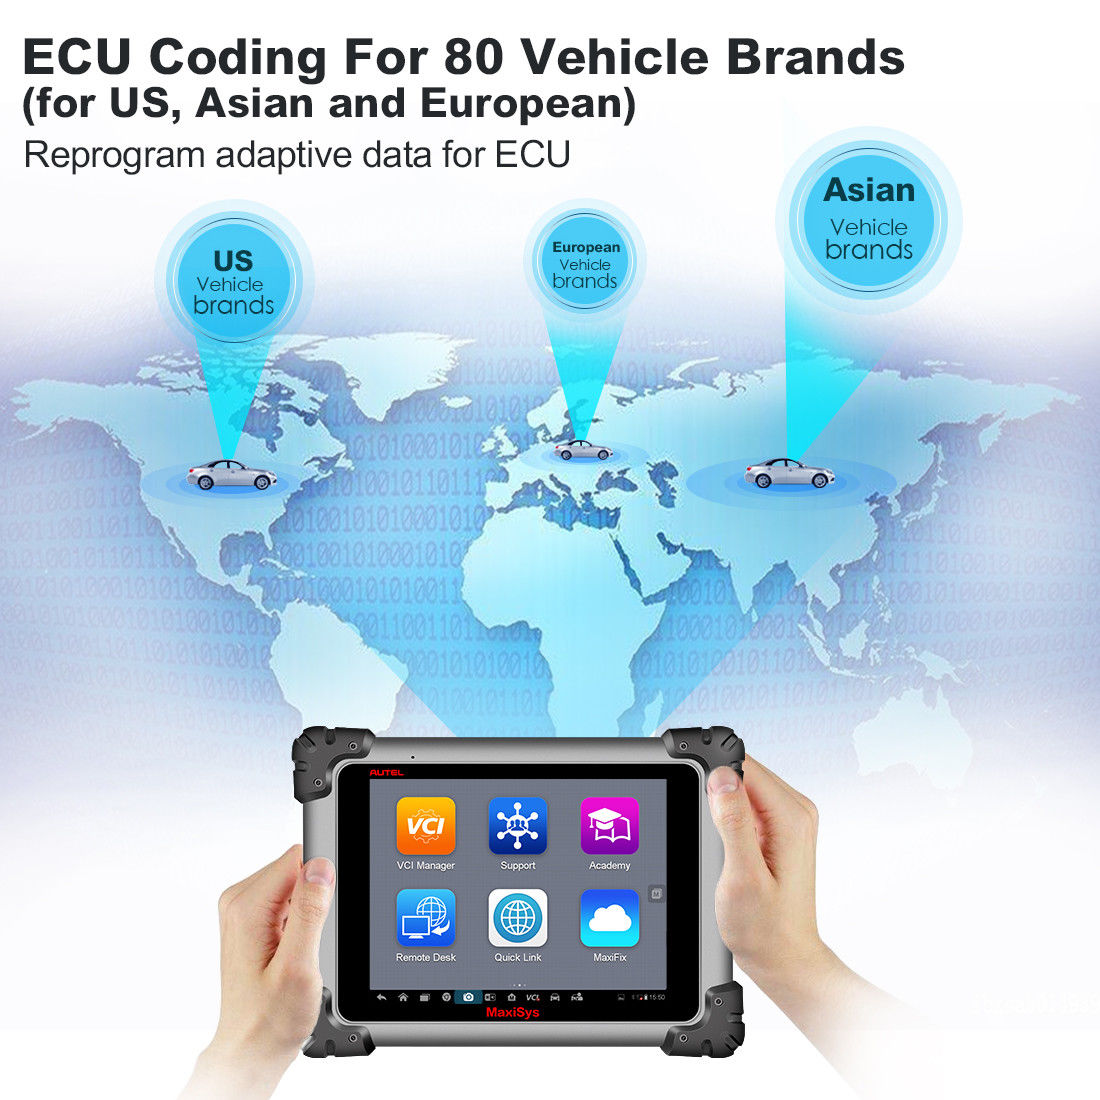 autel ms908 ECU Coding Tool for 80 Vehicle Brands